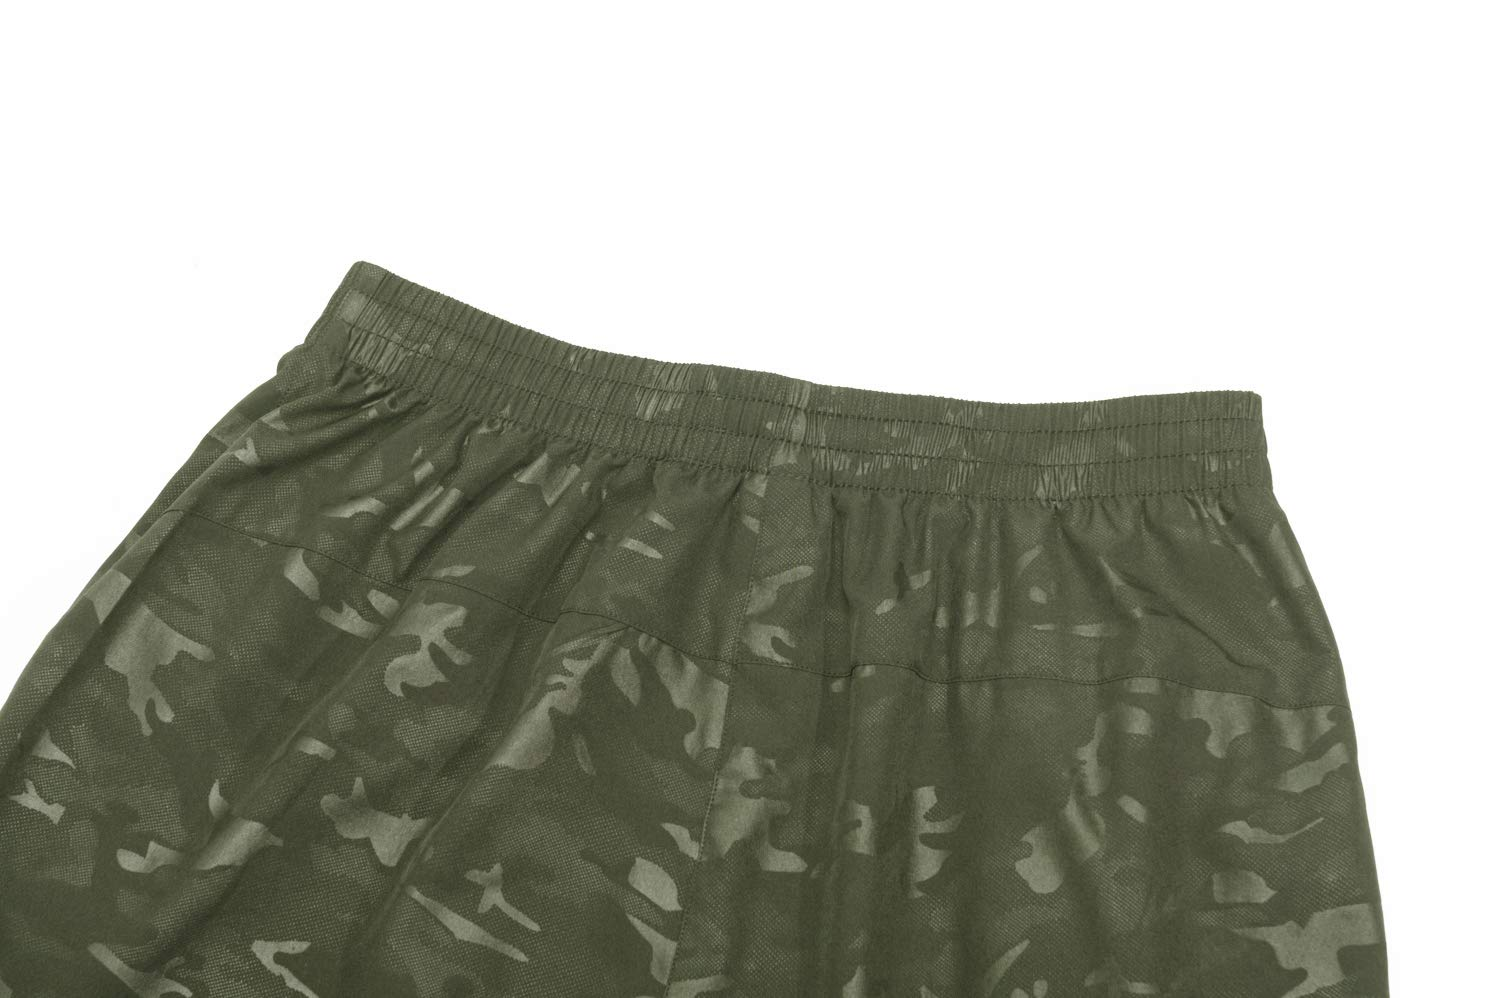 LancerPac Women/'s Camouflage Water Repellent Quick Dry Sports Hiking Shorts with Zipper Pocket